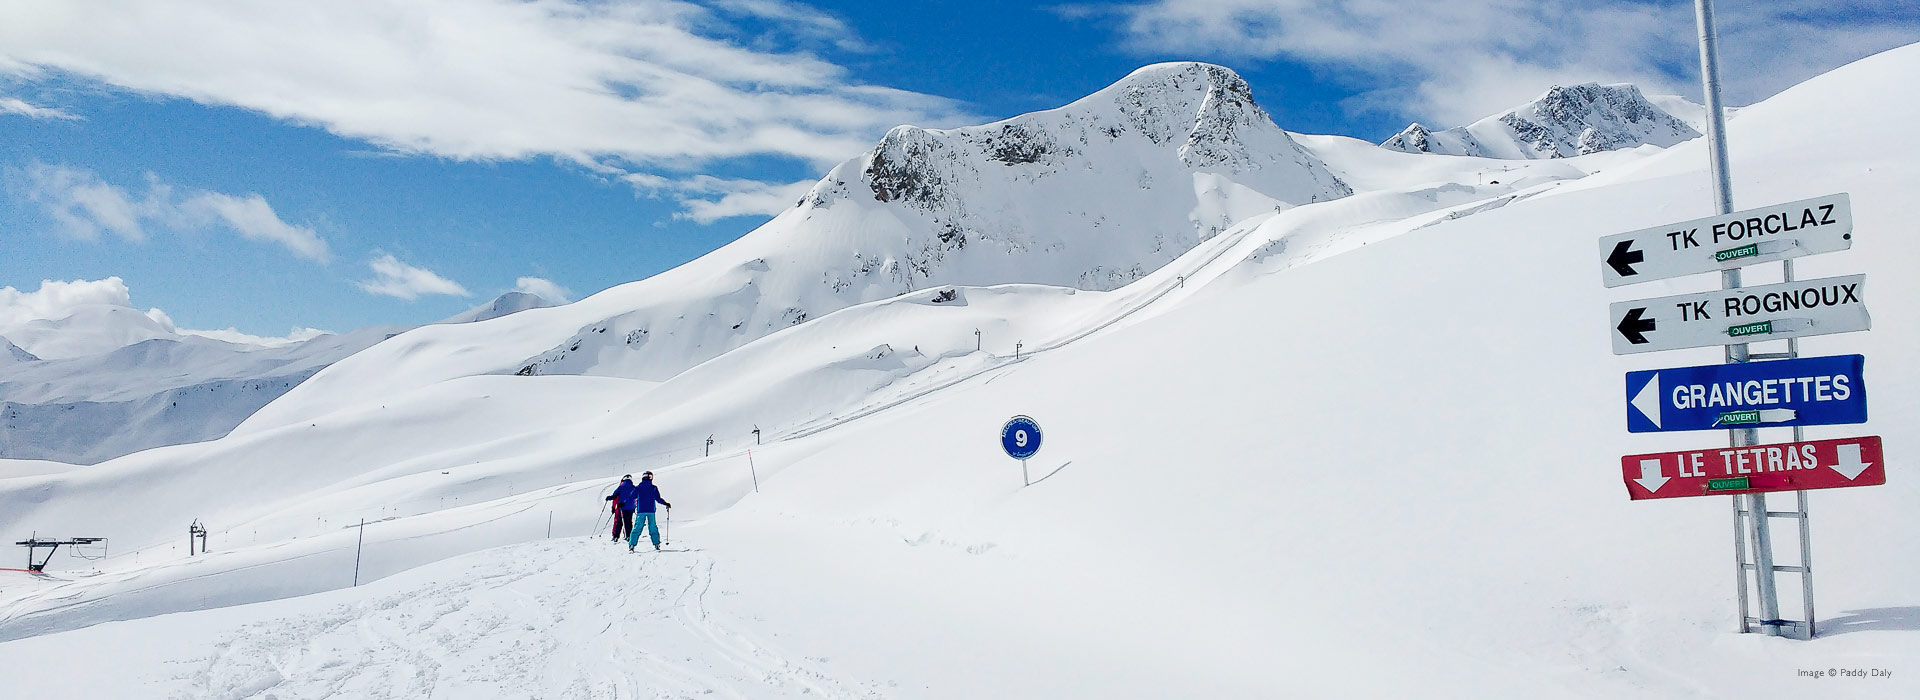 Two skiers on fresh snow in Areches-Beaufort, French Alps